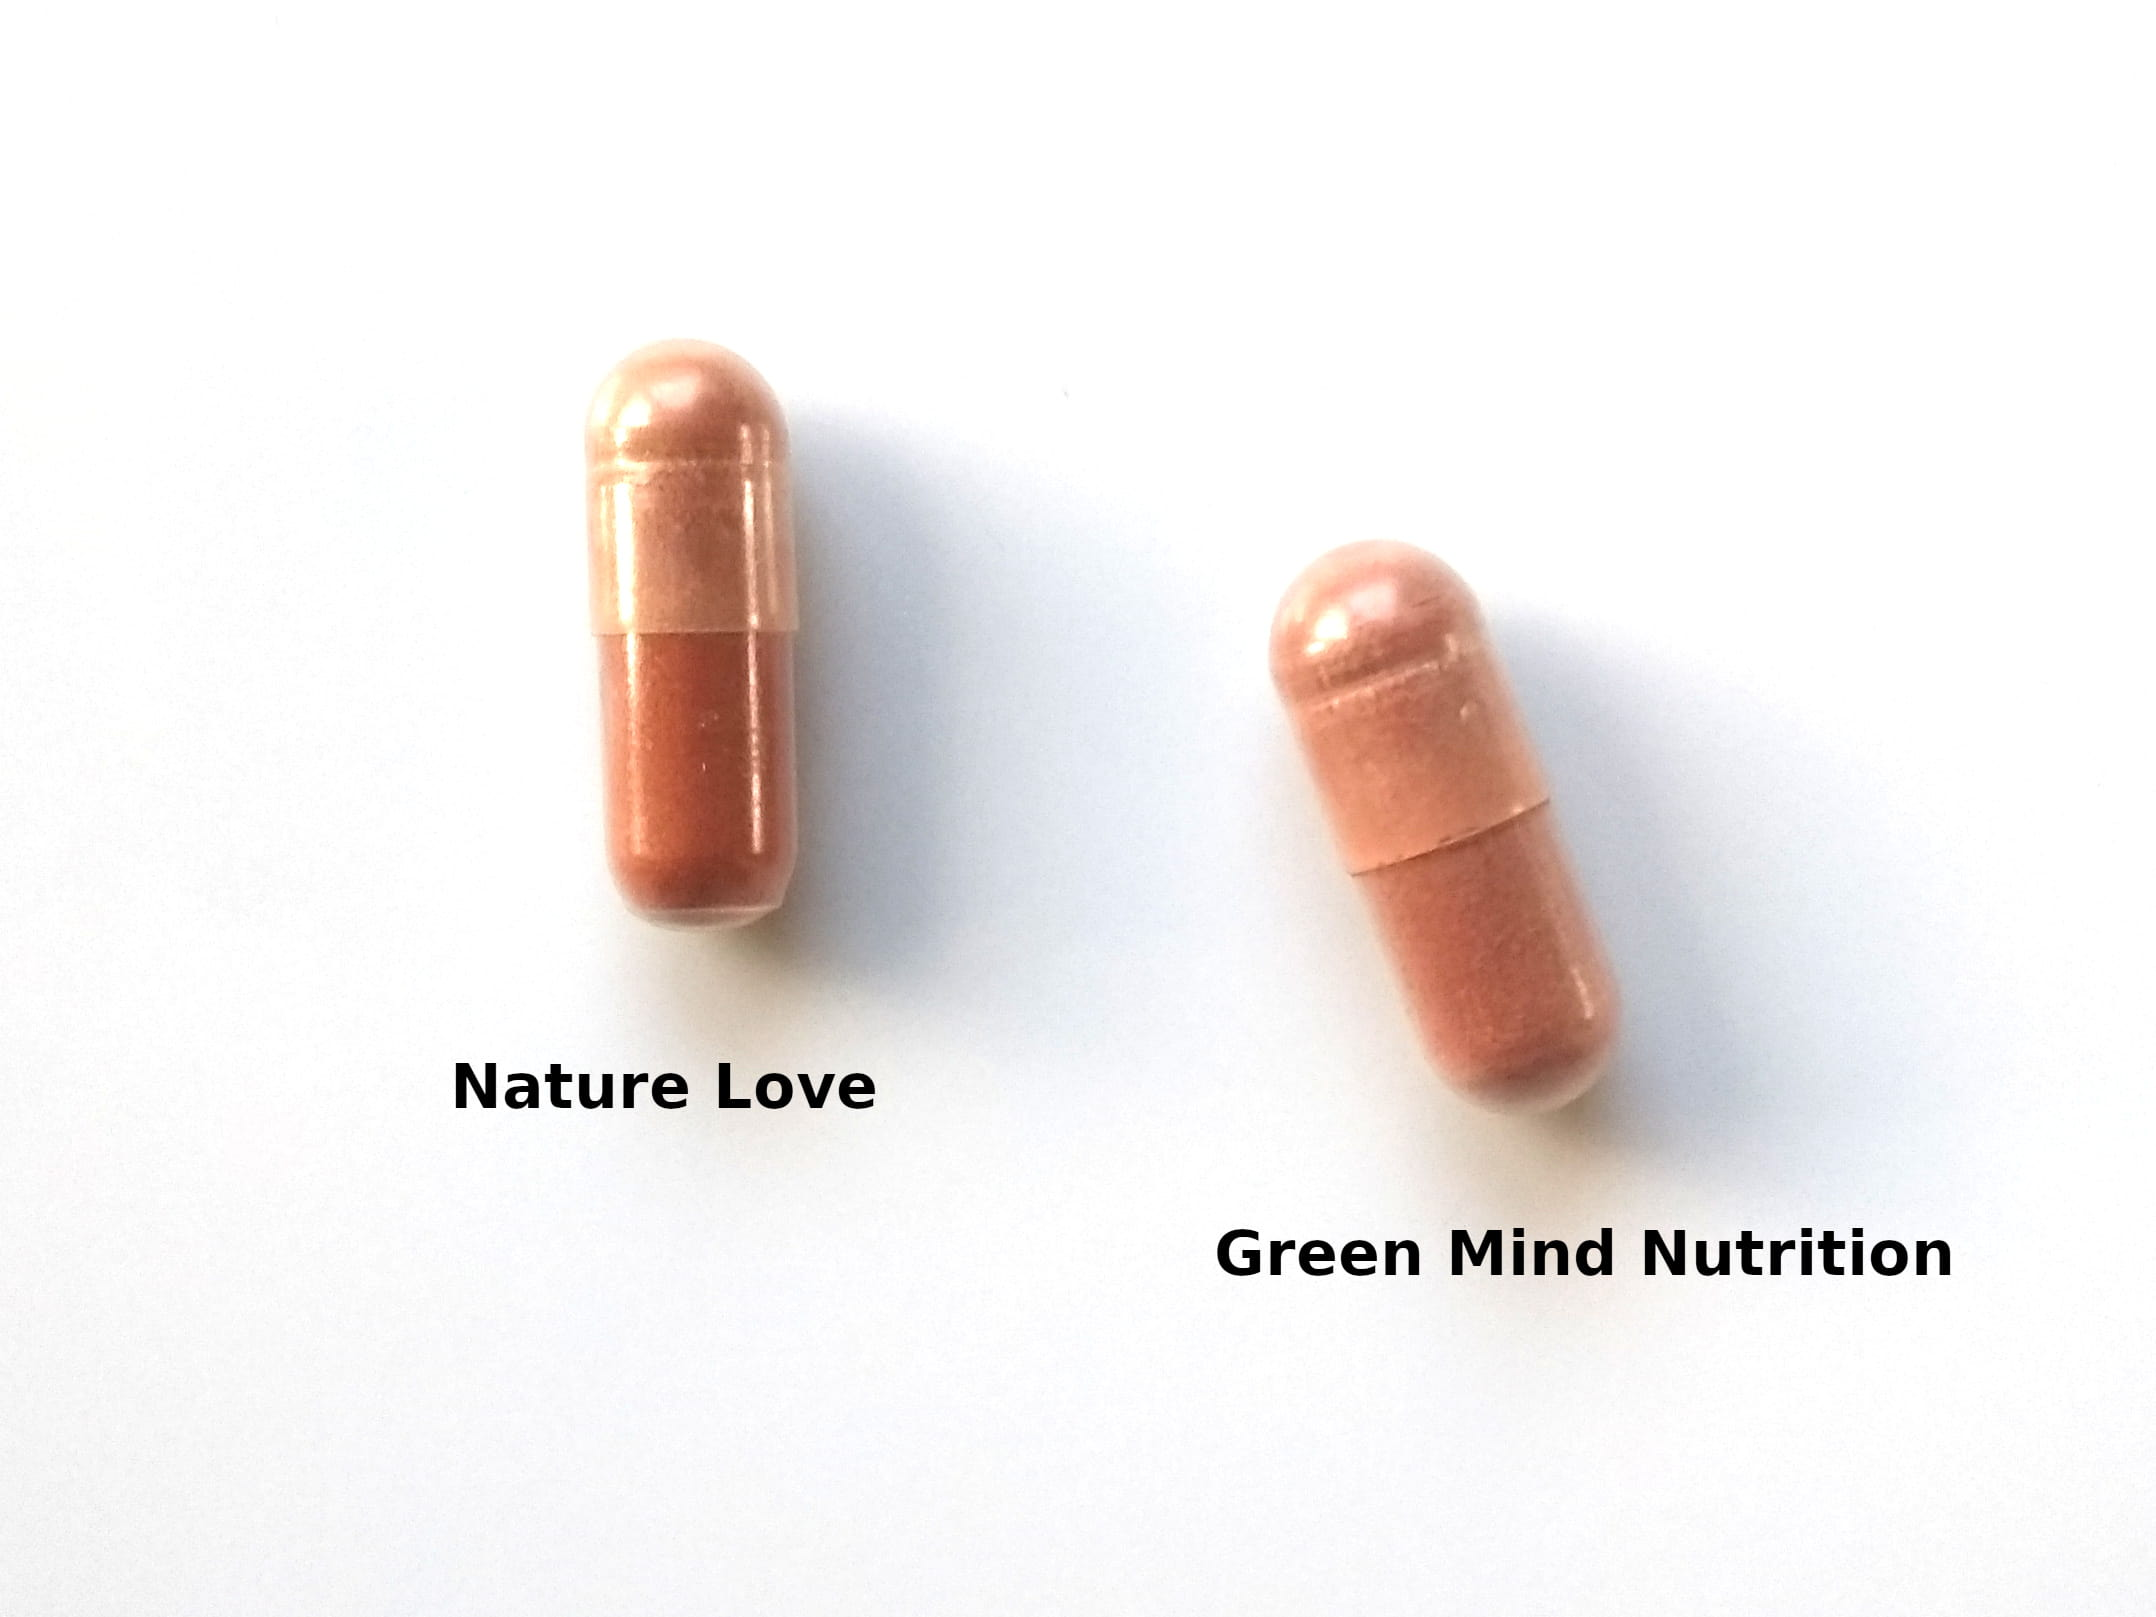 Nature Love vs. Green Mind Nutrition